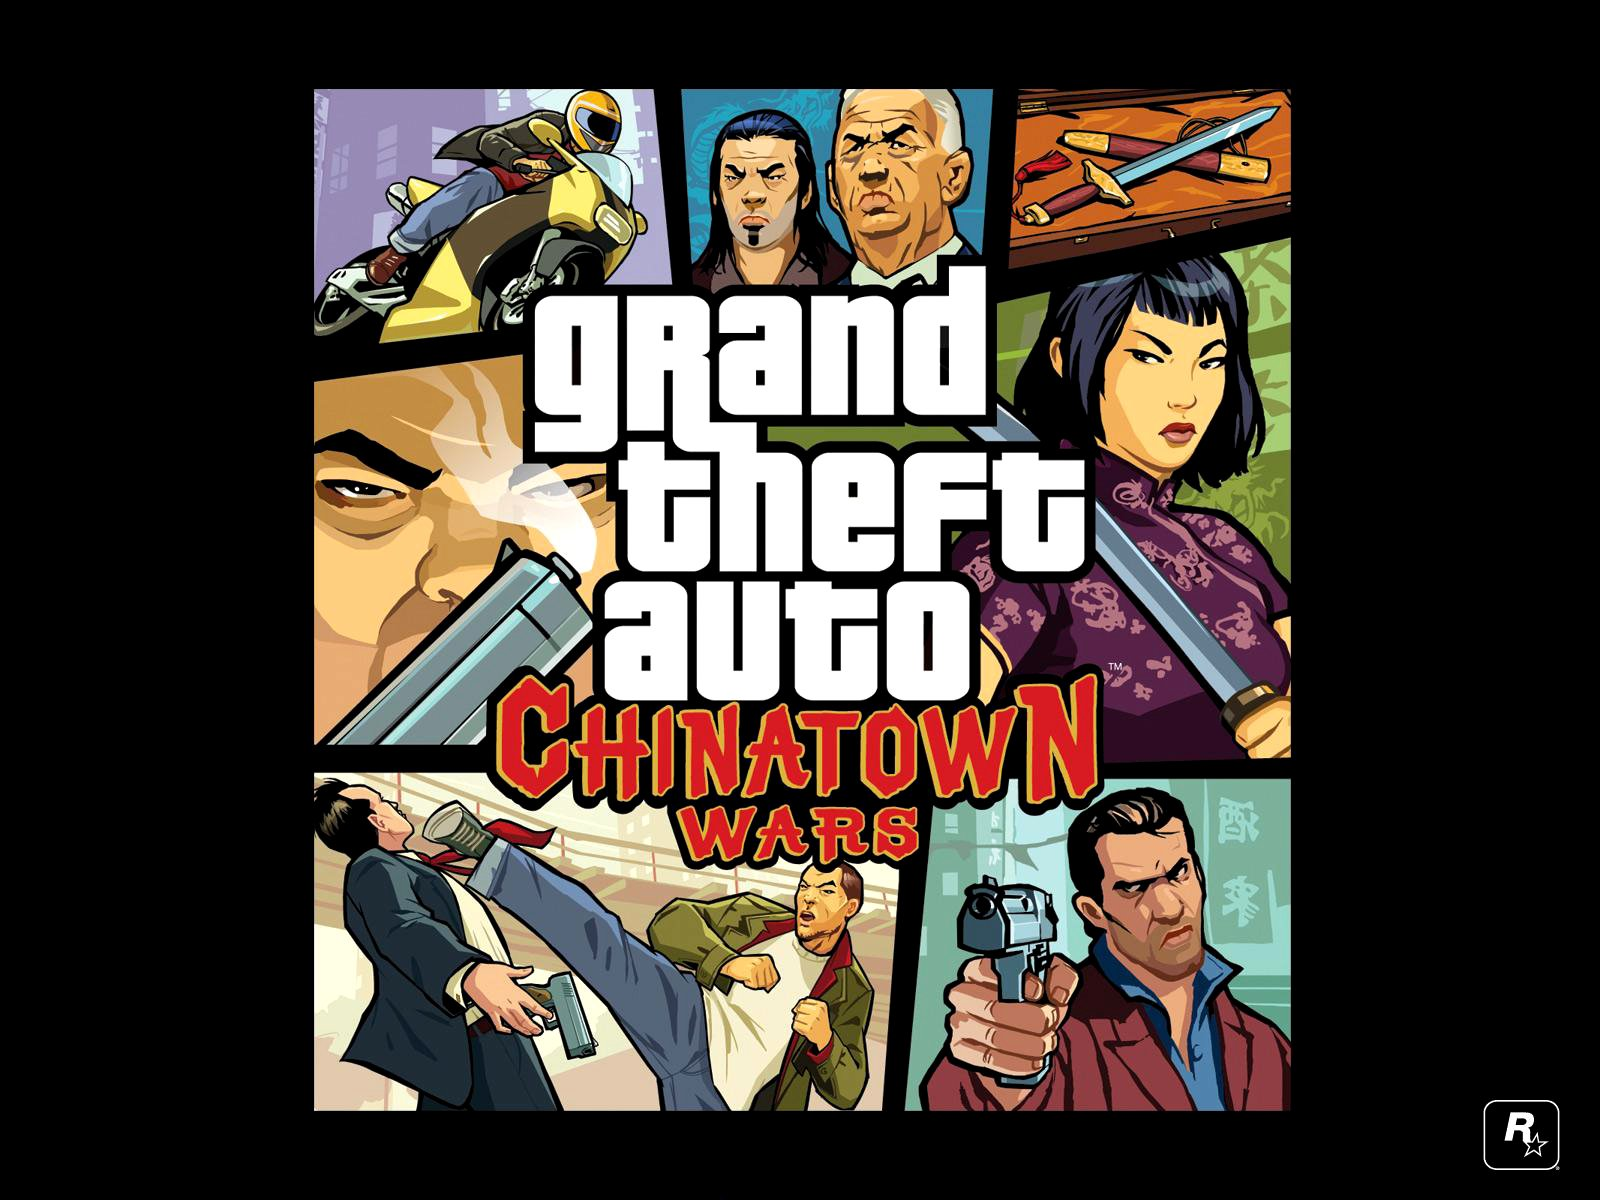 Grand Theft Auto Chinatown Wars HD Wallpapers Desktop Wallpapers 1600x1200